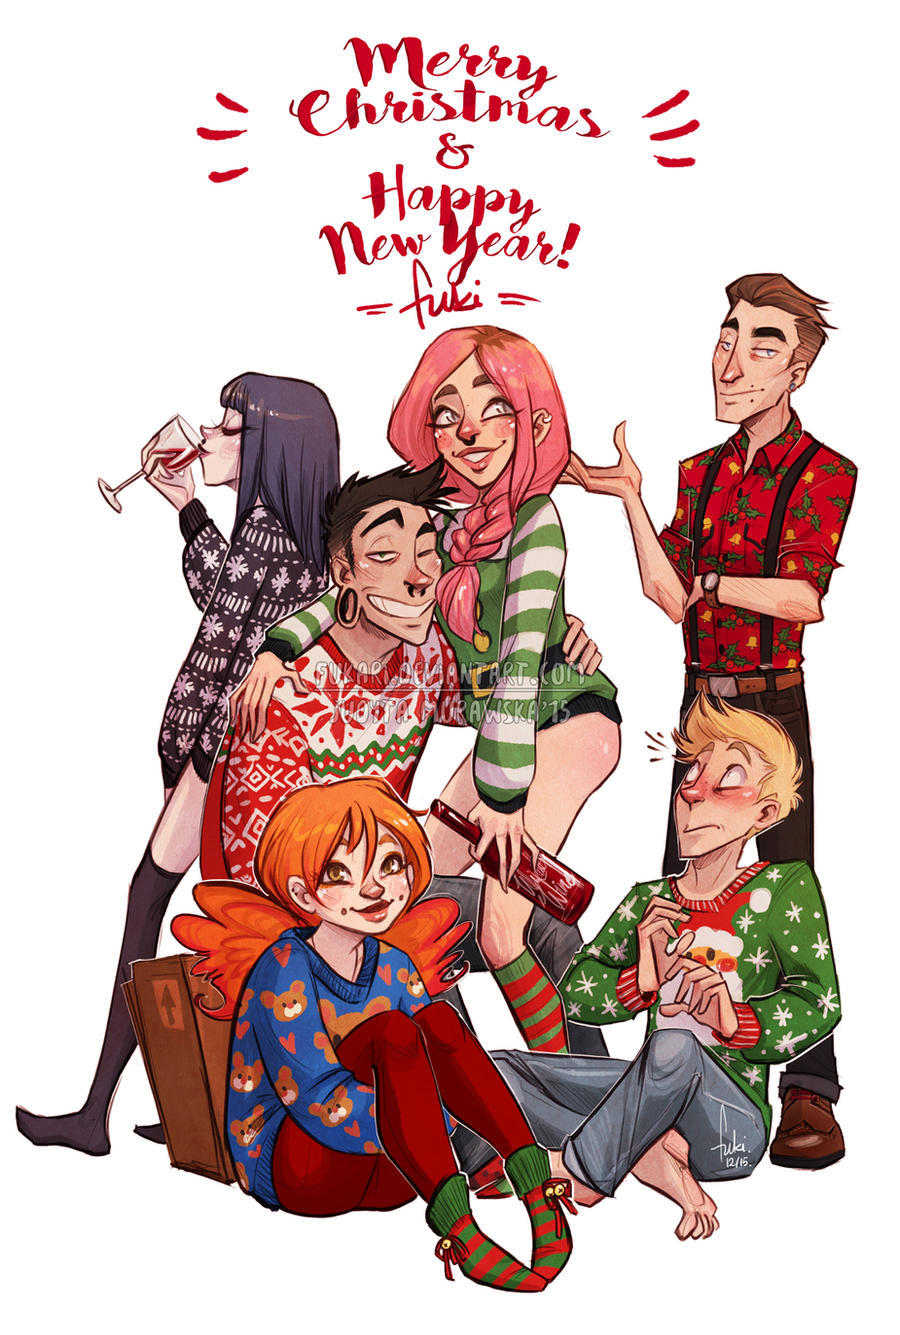 and happiest new year by Fukari